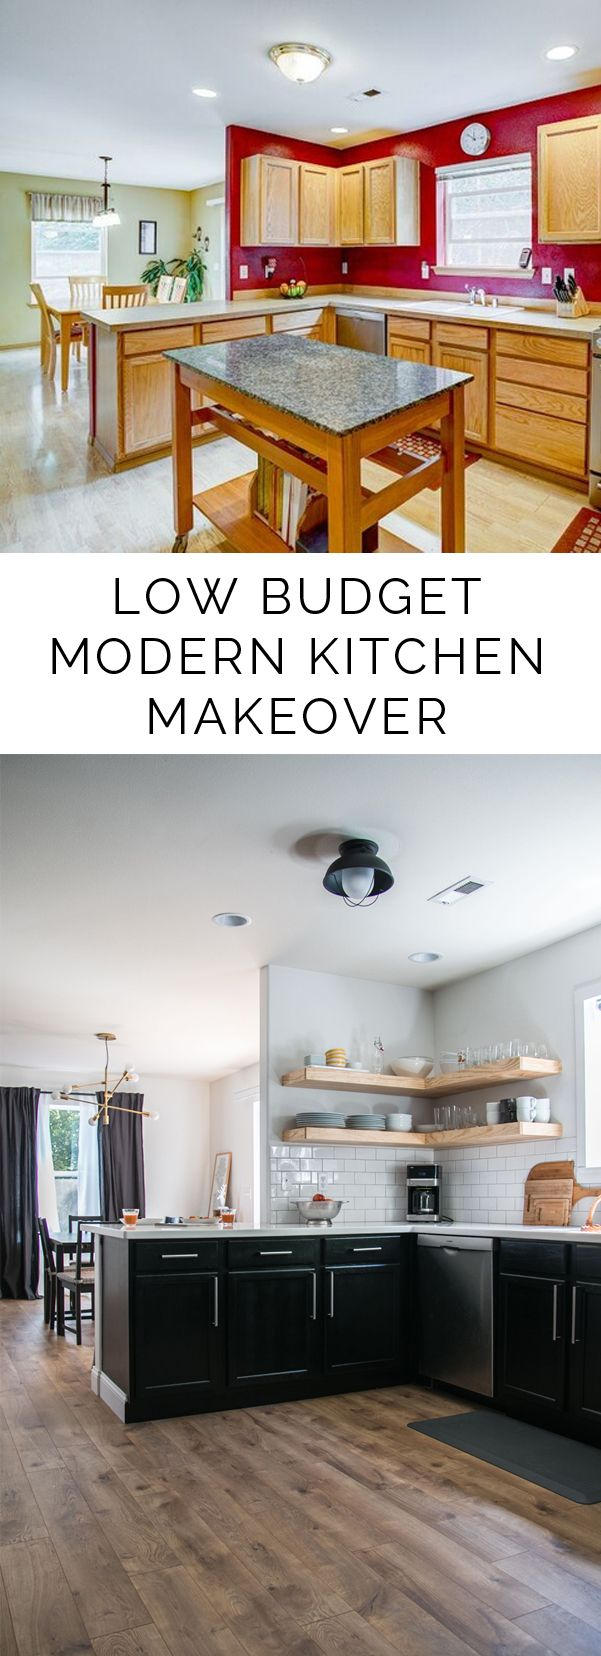 Budget Kitchen Remodel Ideas Exterior best 25+ budget kitchen ideas ideas on pinterest | budget kitchen